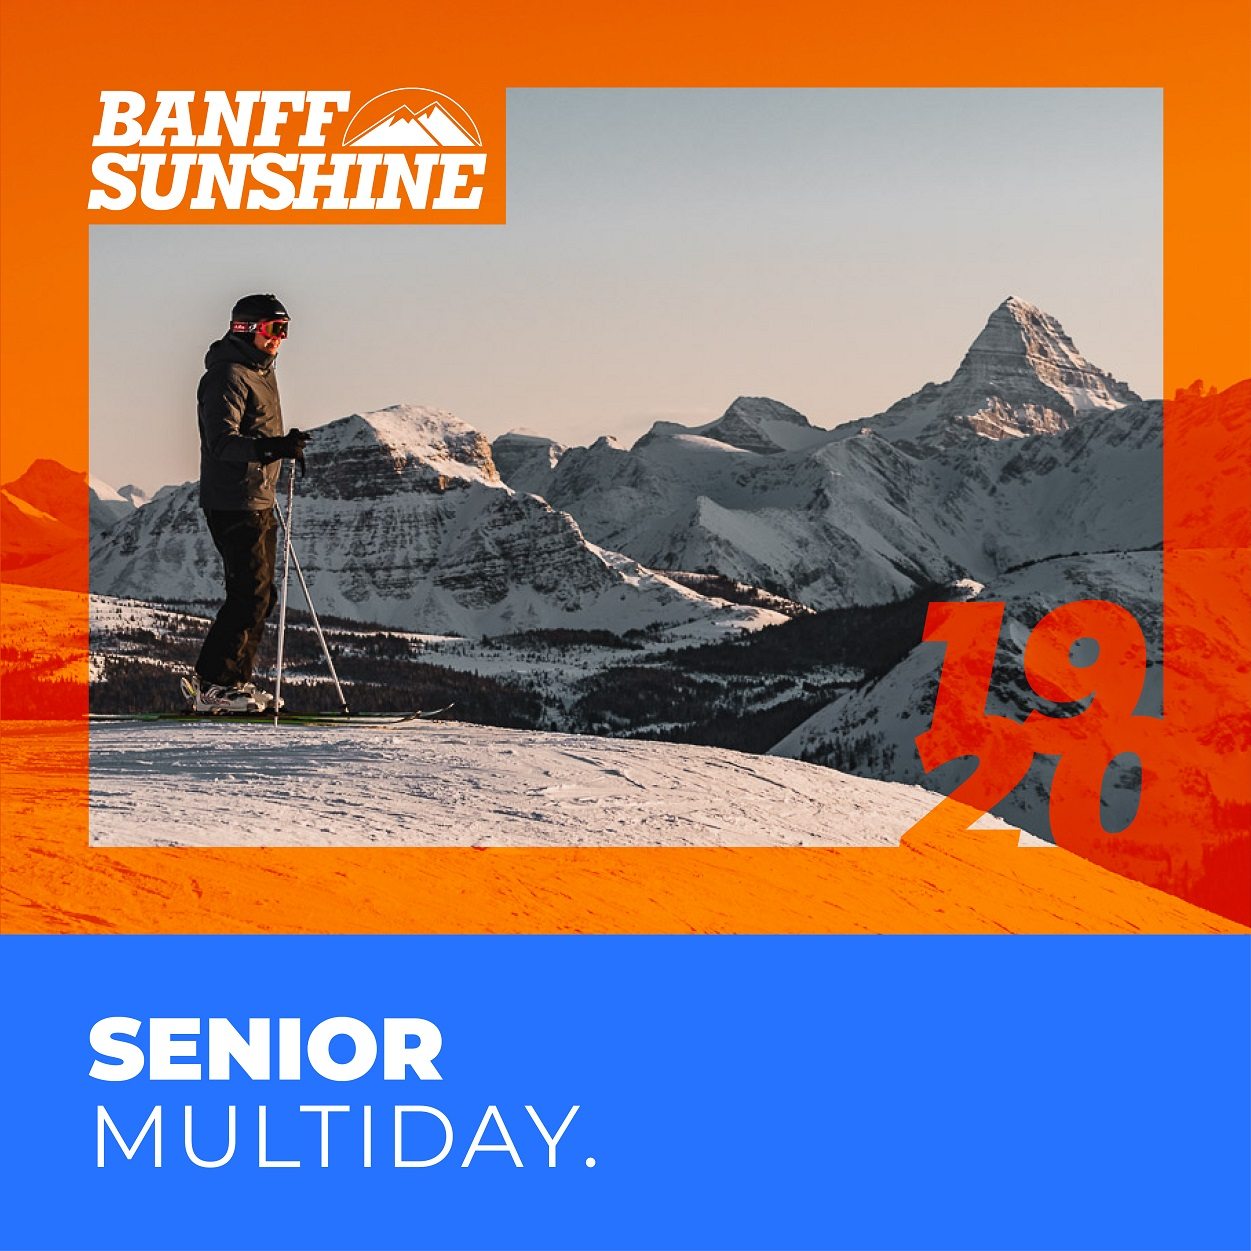 Senior Multiday